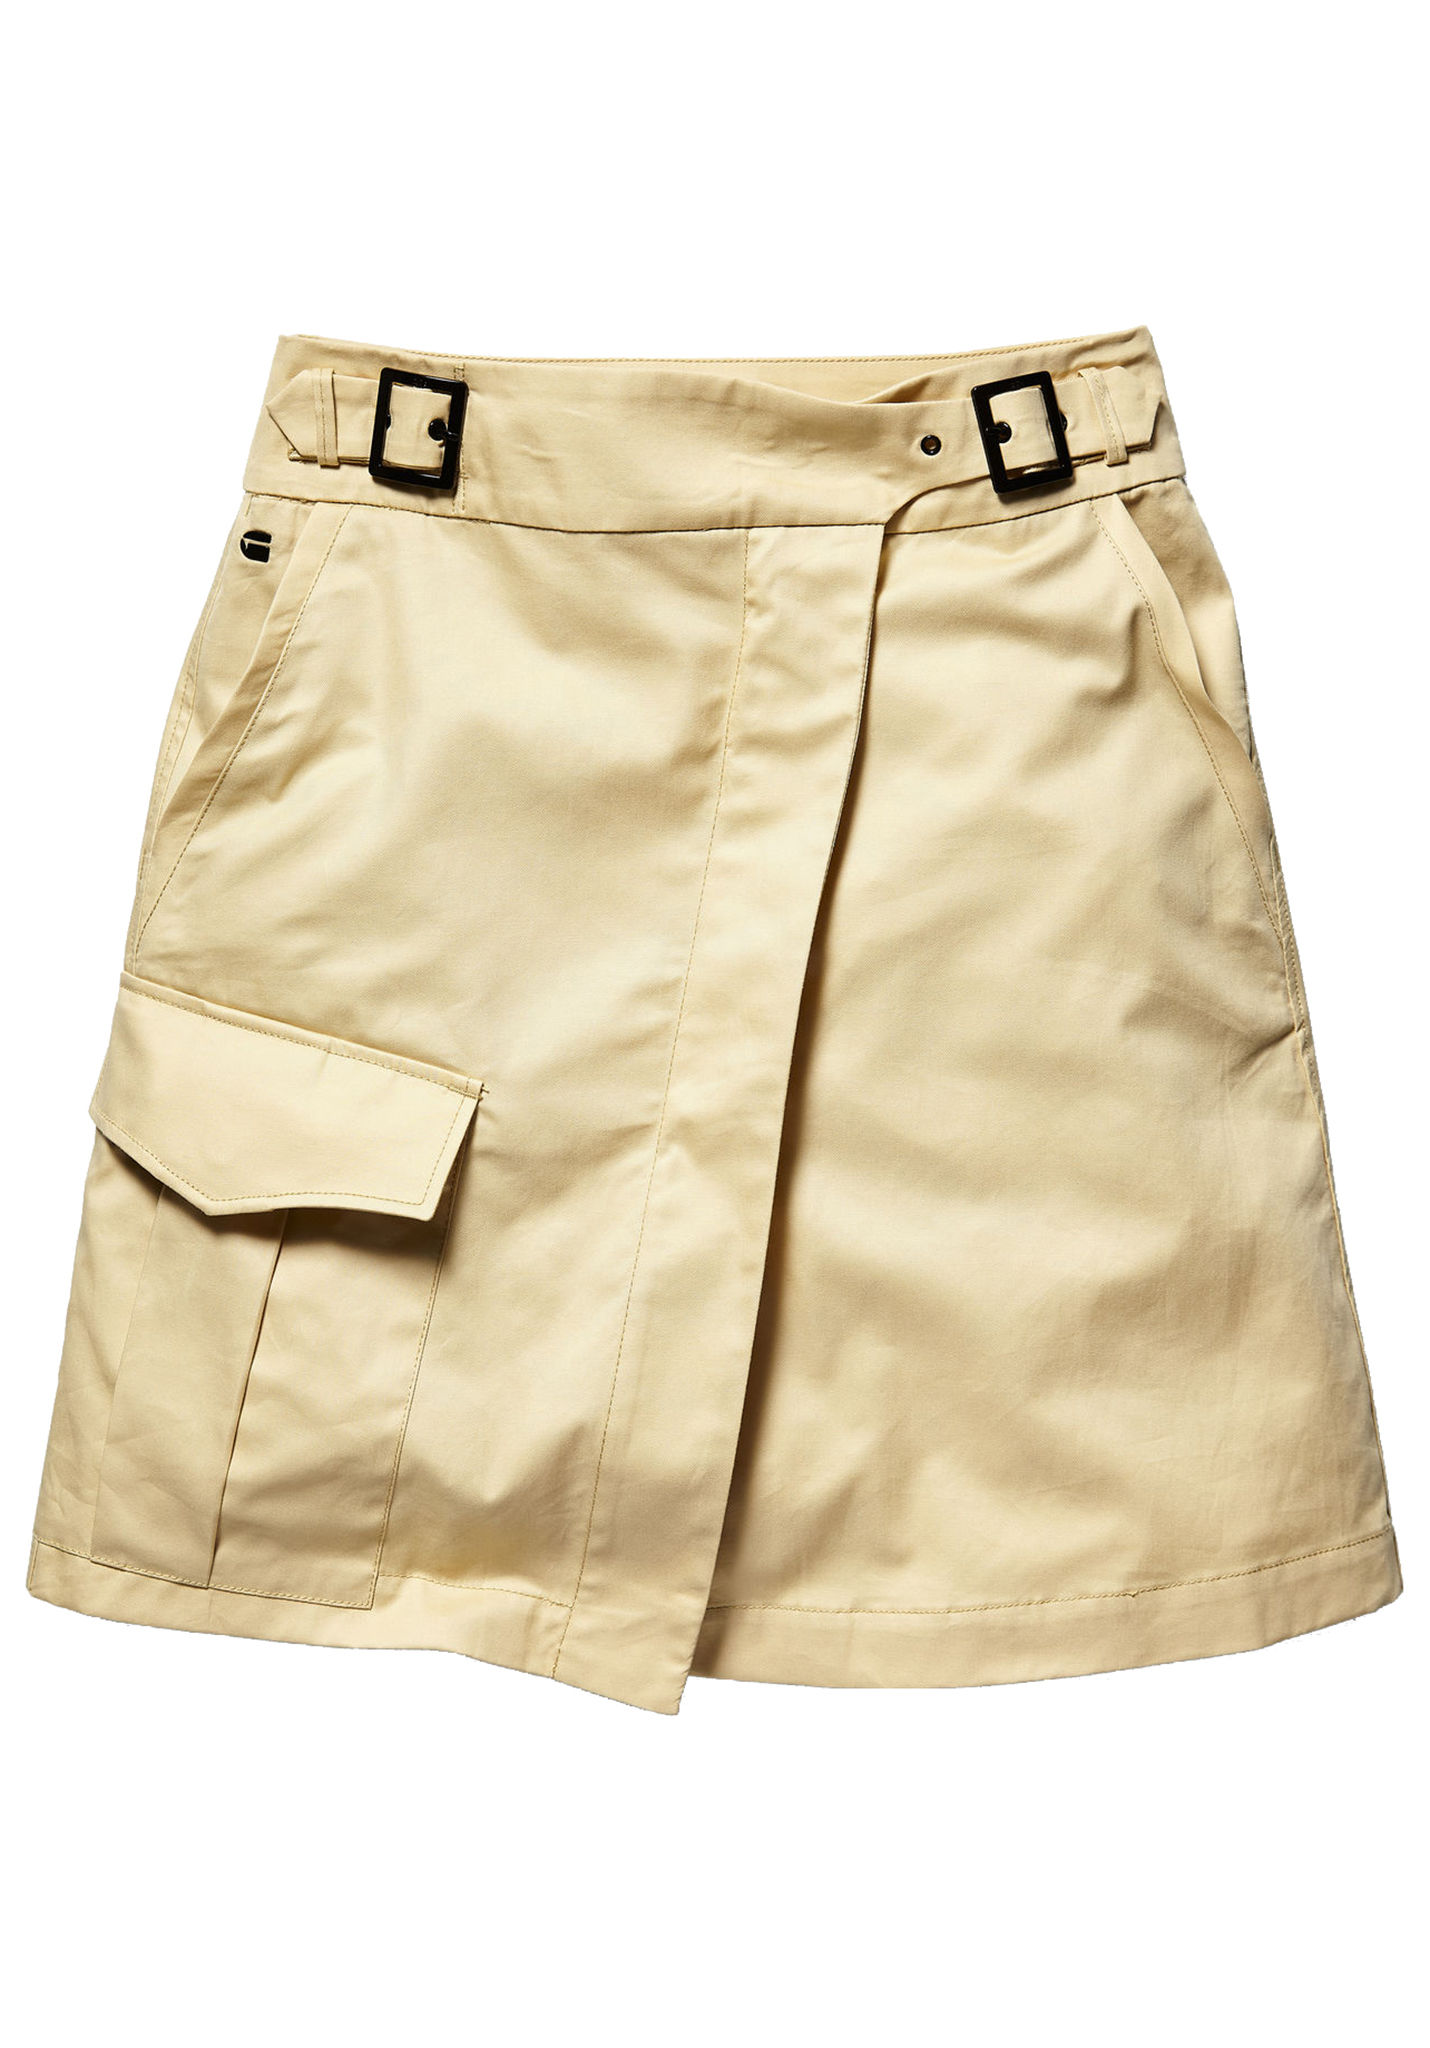 86db106b50 G-STAR Bristum Army Wrap - Skirt for Women - Beige - Planet Sports